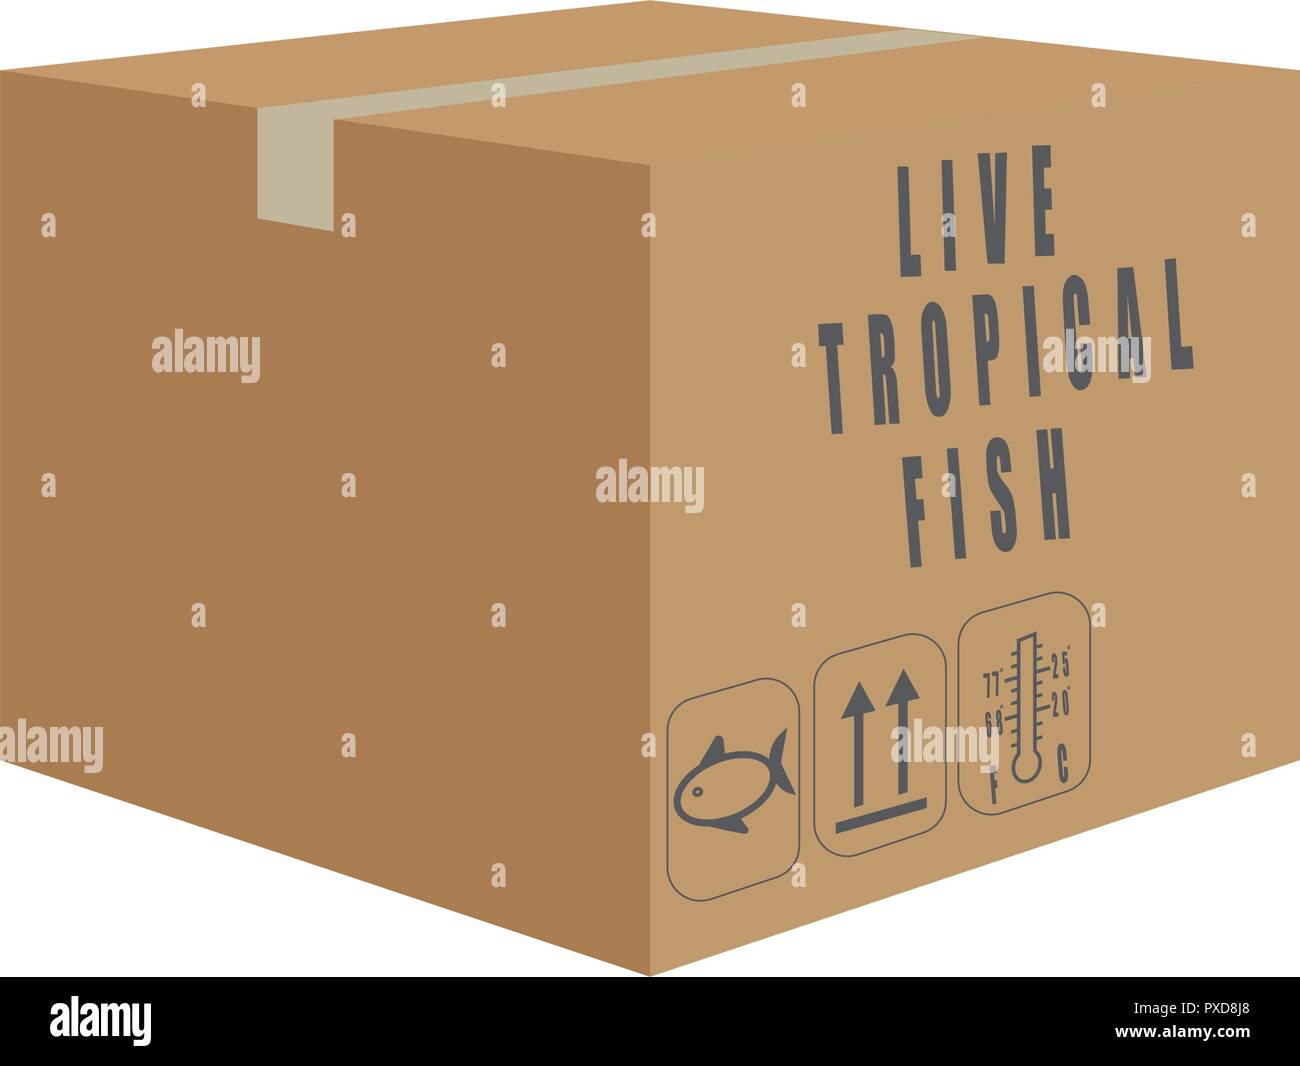 Vector of box of live tropical fish shipment - Stock Image